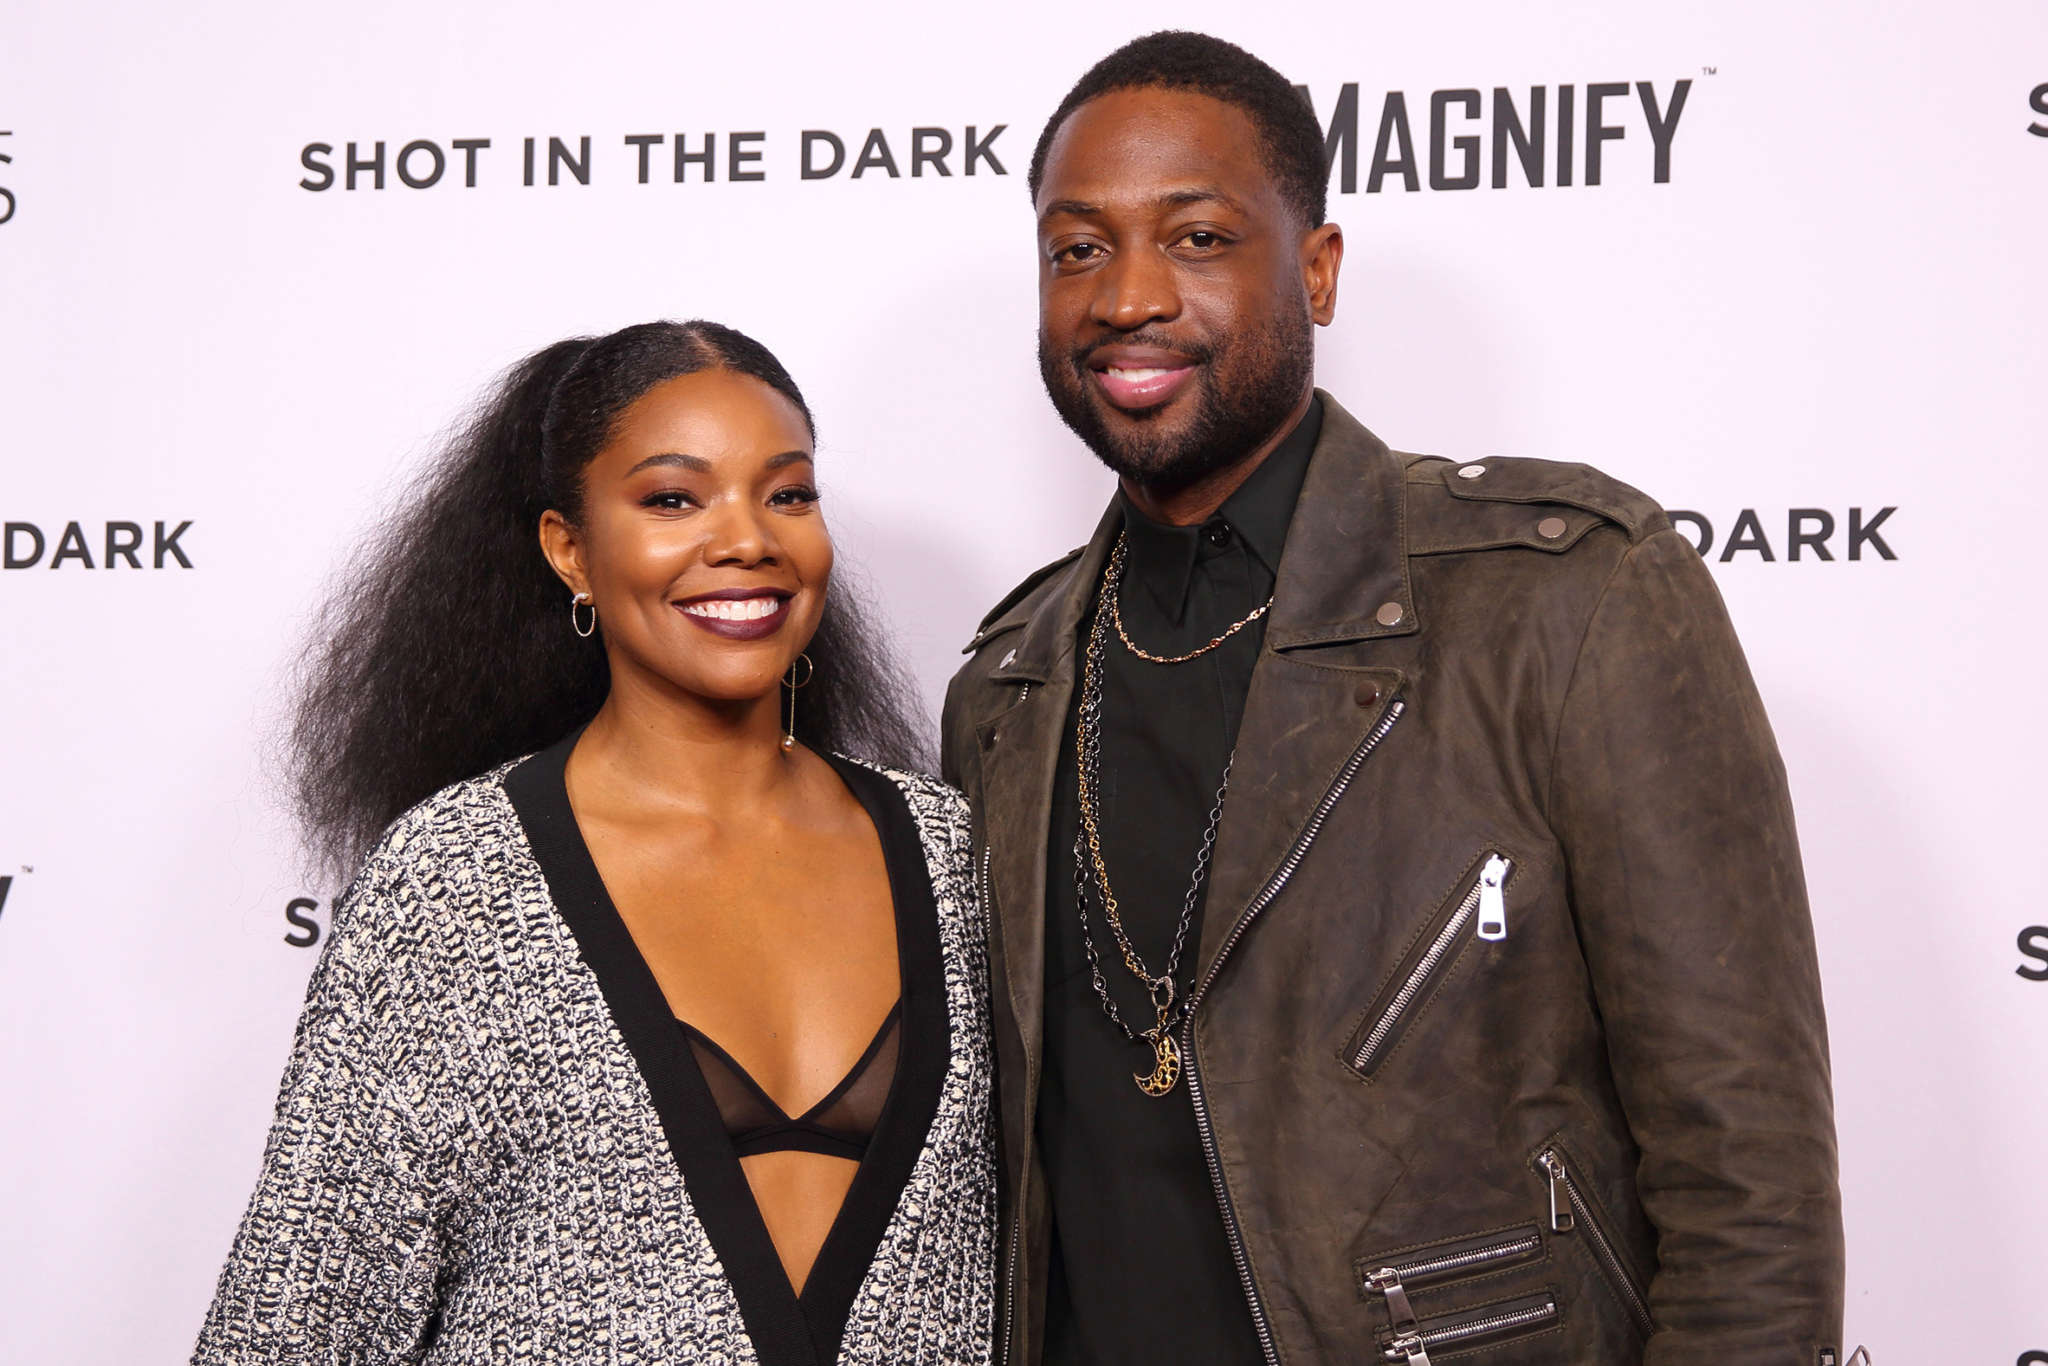 Gabrielle Union shared some photos of herself and Dwyane Wade that have fans in awe. Check out the magical pics and you'll see why.  'Dress is fire Twin! Beautiful Pic ❤️' someone told her. A commenter then said: 'Y'all are a damn twin, I used to think y'all sisters or cousins or related or whatever.' Someone praised the couple and posted this message: 'You two look beautiful together. These photos are special ones for some reason the mood, atmosphere, your expression speaks volumes.' Someone else said: 'Come thru with the divine black love kissed by a rainbow!' and another follower posted this: 'Doors with unbelievable blessings on the other side will open up for you soon! Stay focused and stay healthy!' One commenter wrote: 'The rainbow in the back is definitely unplanned? Maybe! Hhmm,' and a follower said: 'The rainbow in the background is everything, beautiful. Love y'all!!' A fan posted this: 'Love the rainbow in the background. Perfect picture,' and a commenter said: 'The rainbow in the background is everything, beautiful. Love y'all!!!'  Someone else wrote: 'That dress though! Is this part of your clothing line? @gabunion,' and a commenter said: 'Real love the kind that lasts forever... black love.' One fan posted this message: 'So y'all really are the pot of gold at the end of the rainbow? Hell yeah.' In other news, Gabrielle Union shared a photo on her social media account in the memory of Chadwick Boseman, but something about the pic disturbed some of her followers.  All in all, people accused her of politicizing his death. Also not too long ago, Gabrielle Union celebrated her and Dwyane Wade's anniversary and made sure to mark the event on social media as well. Gabrielle and Dwyane are living their best life together with their family and fans could not be happier for them.